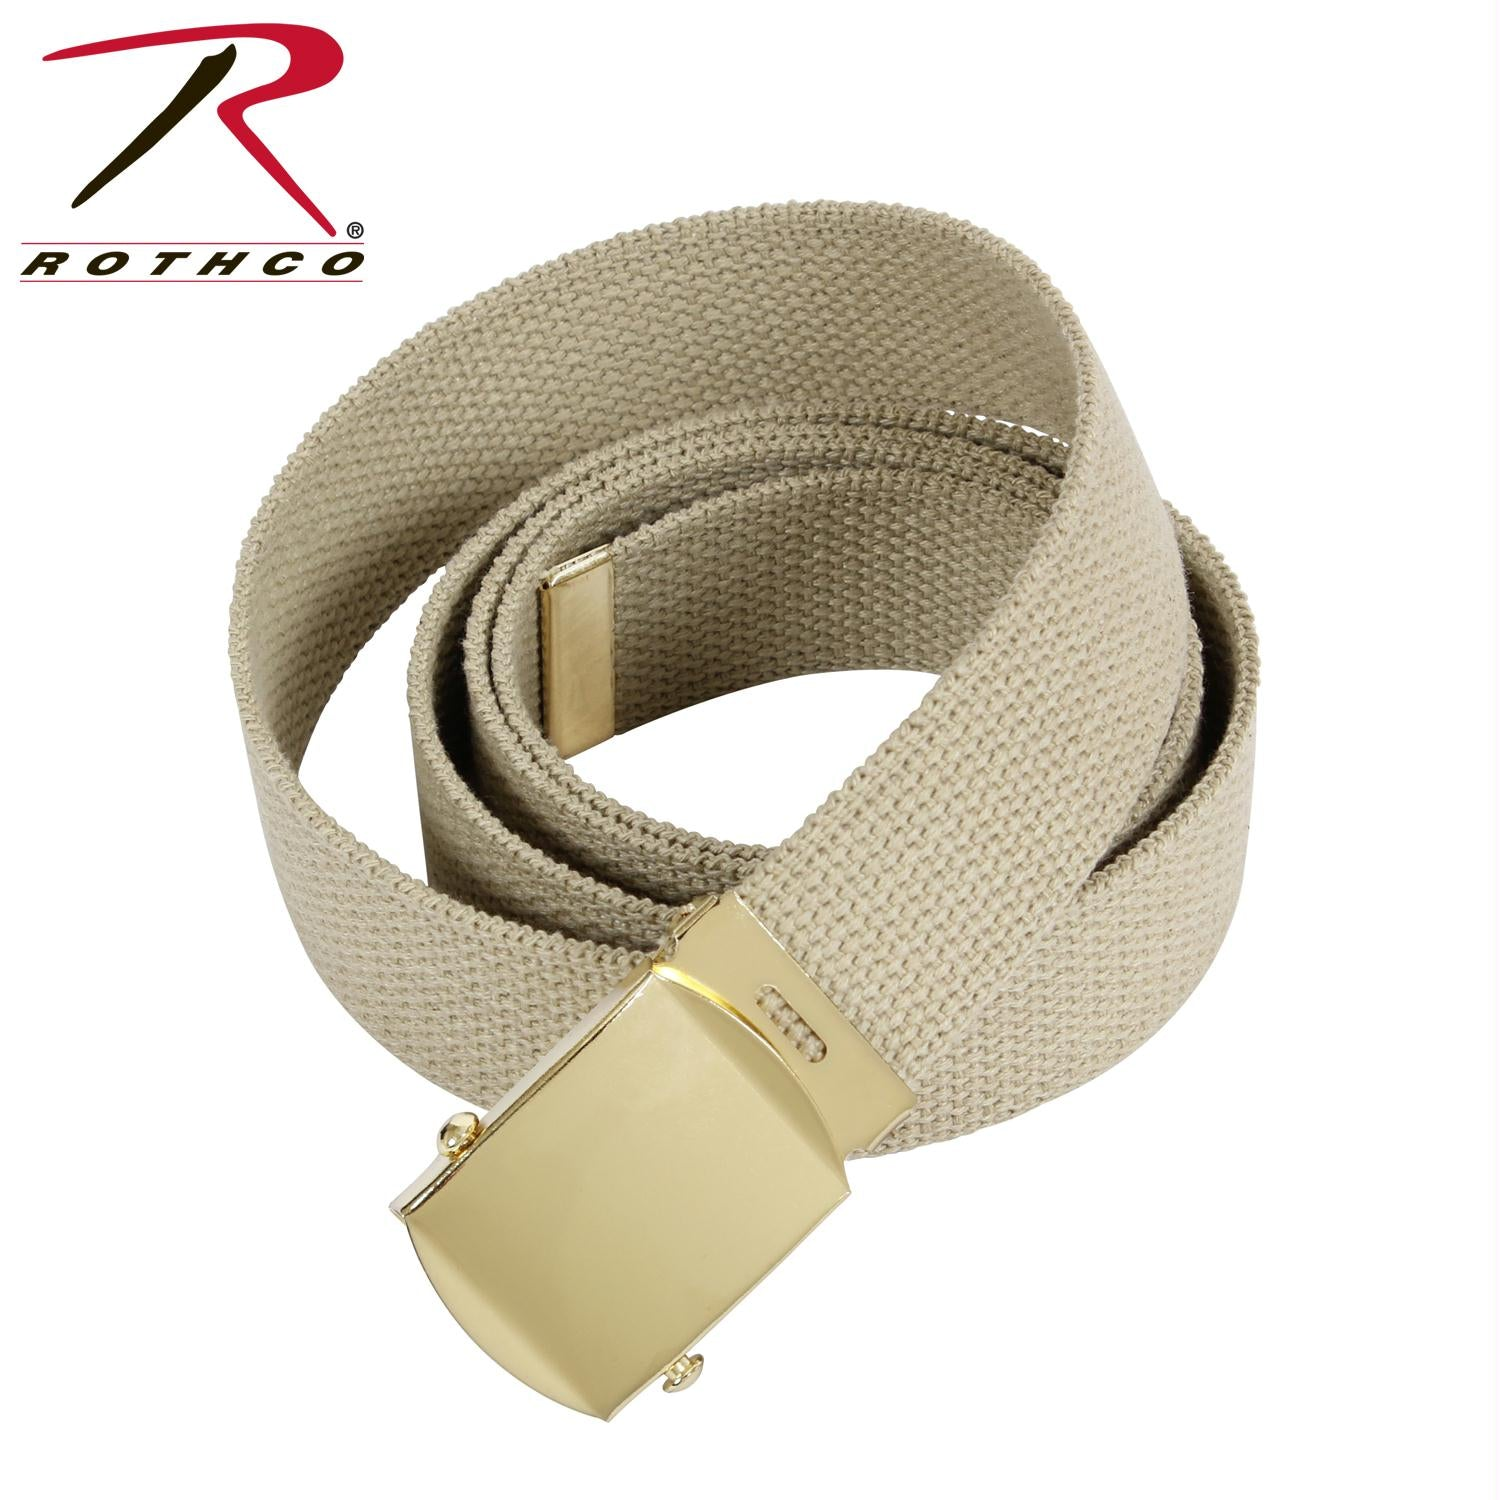 Rothco 64 Inch Military Color Web Belts - Gold / Khaki